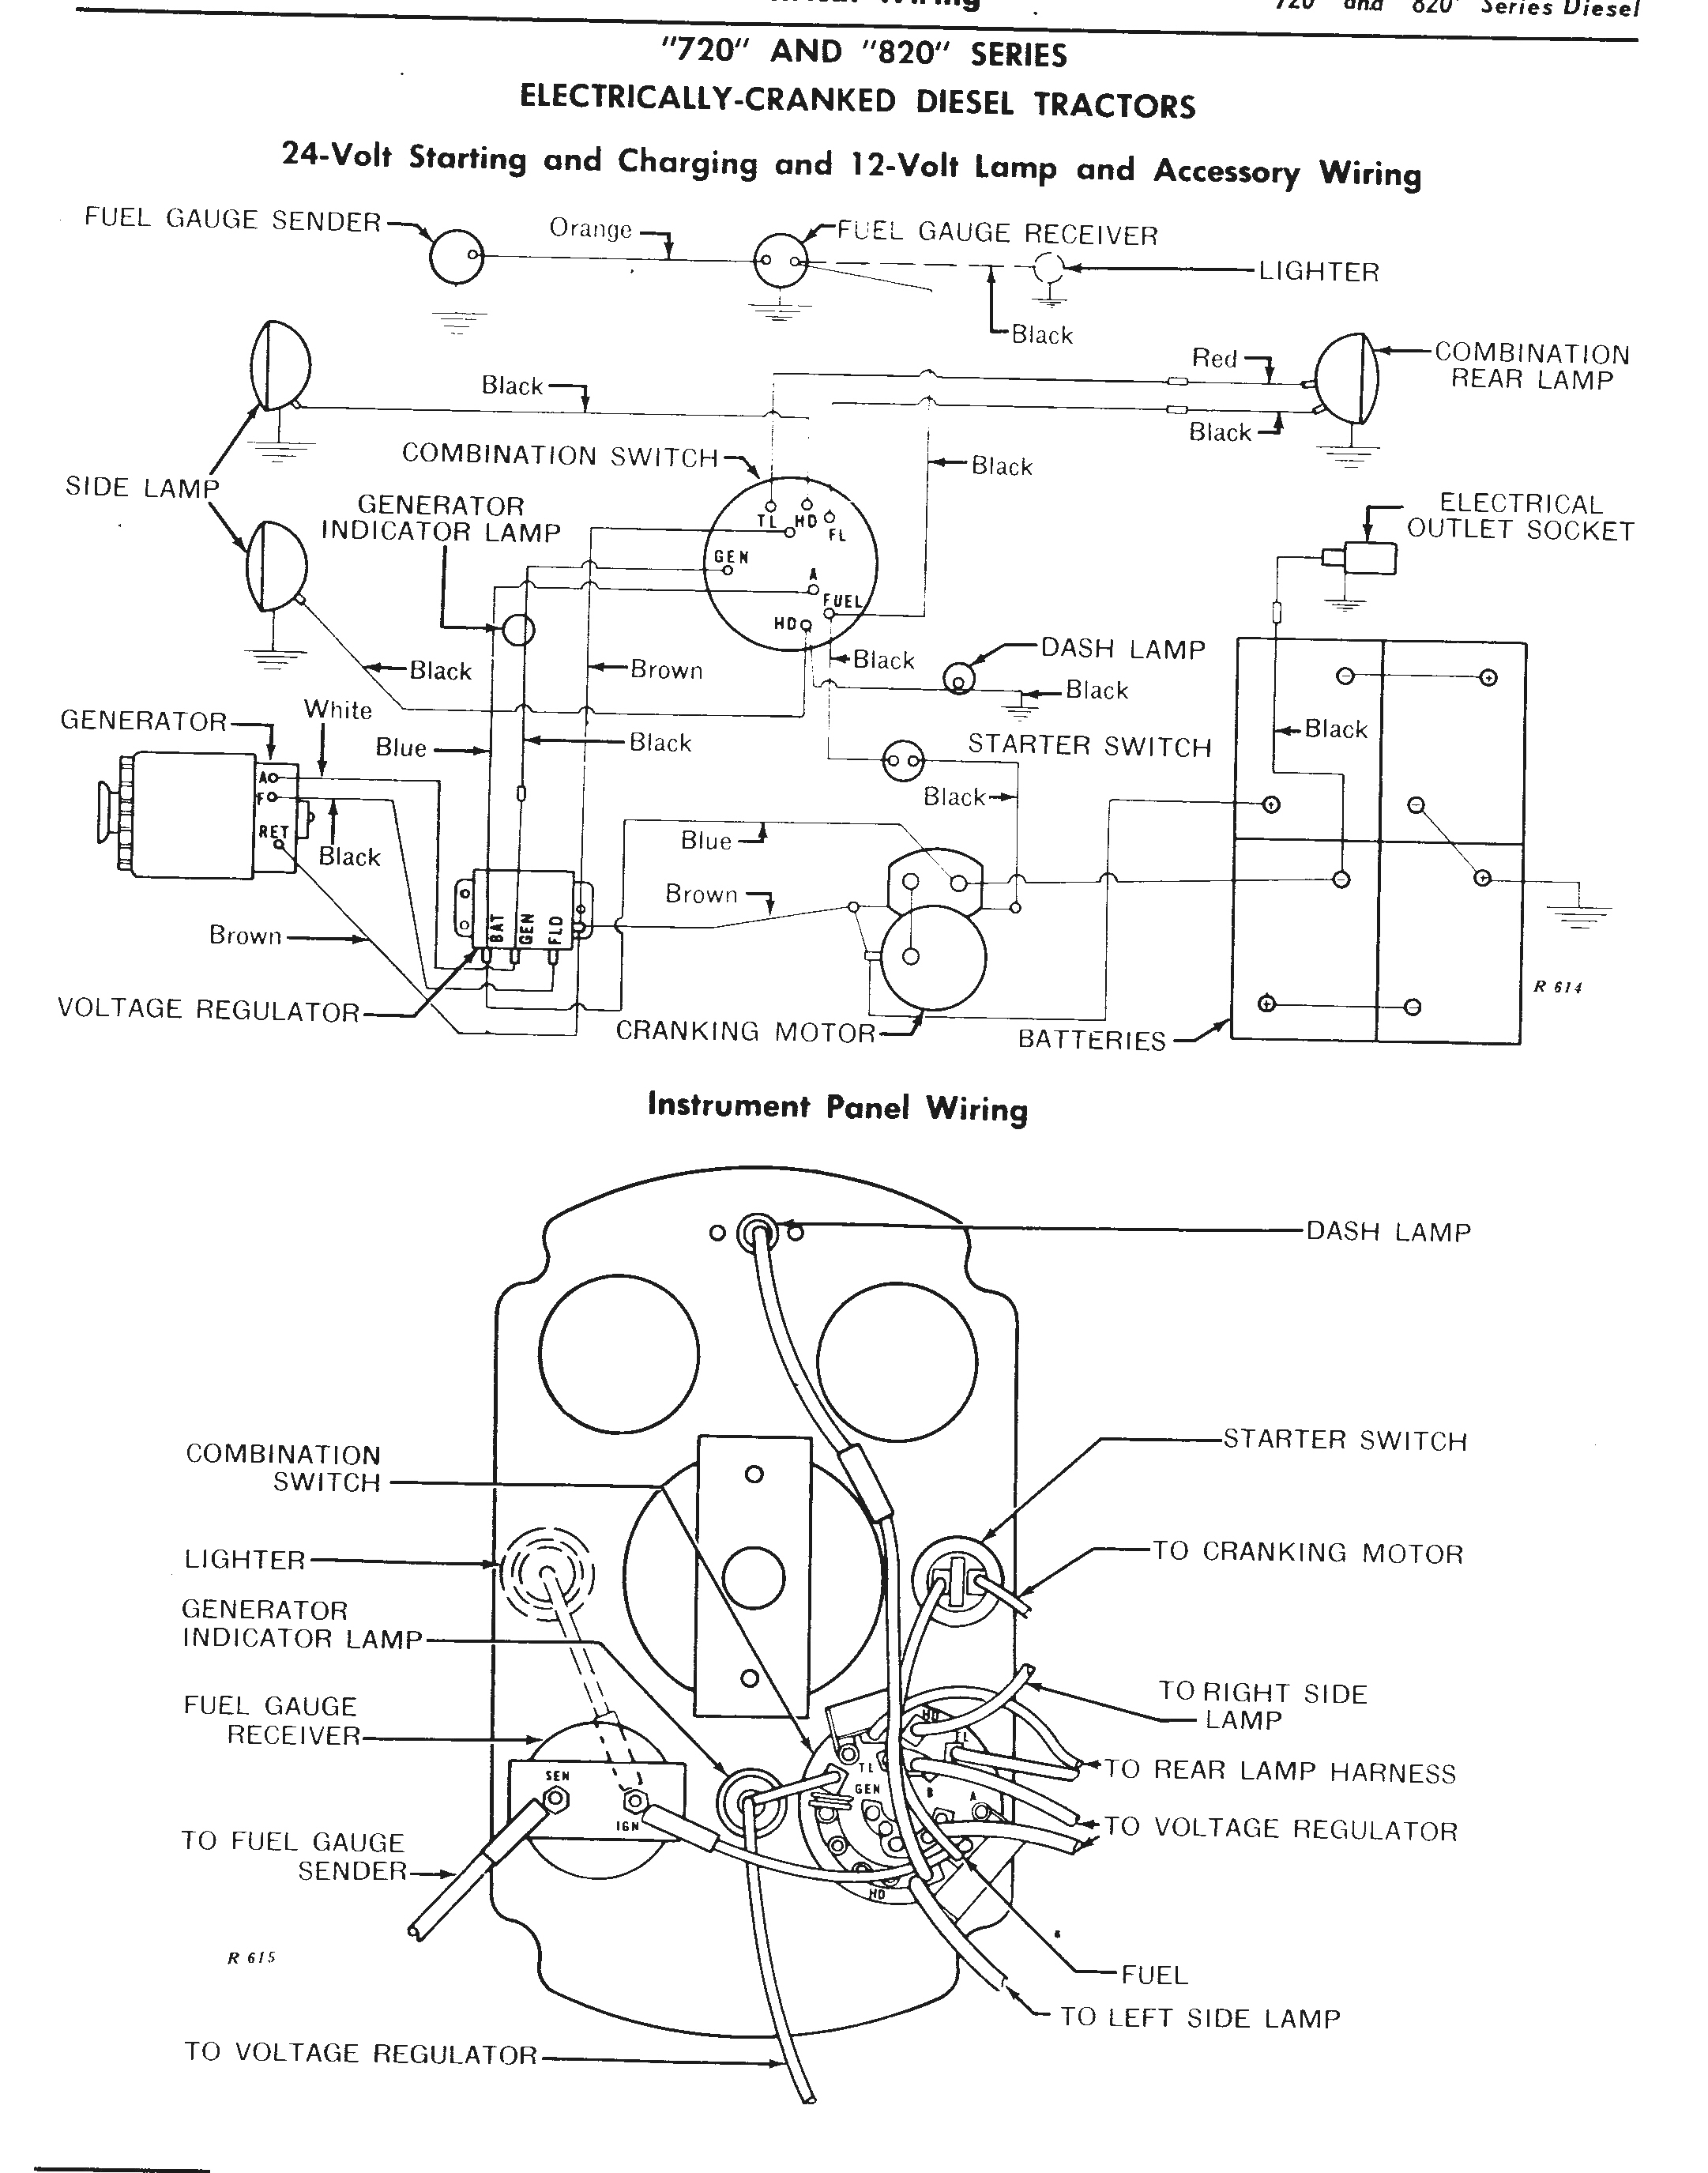 jd 4020 24 volt wiring diagram schematic diagram 24 Volt AC Transformer Wiring Diagram the john deere 24 volt electrical system explained john deere starter wiring diagram jd 4020 24